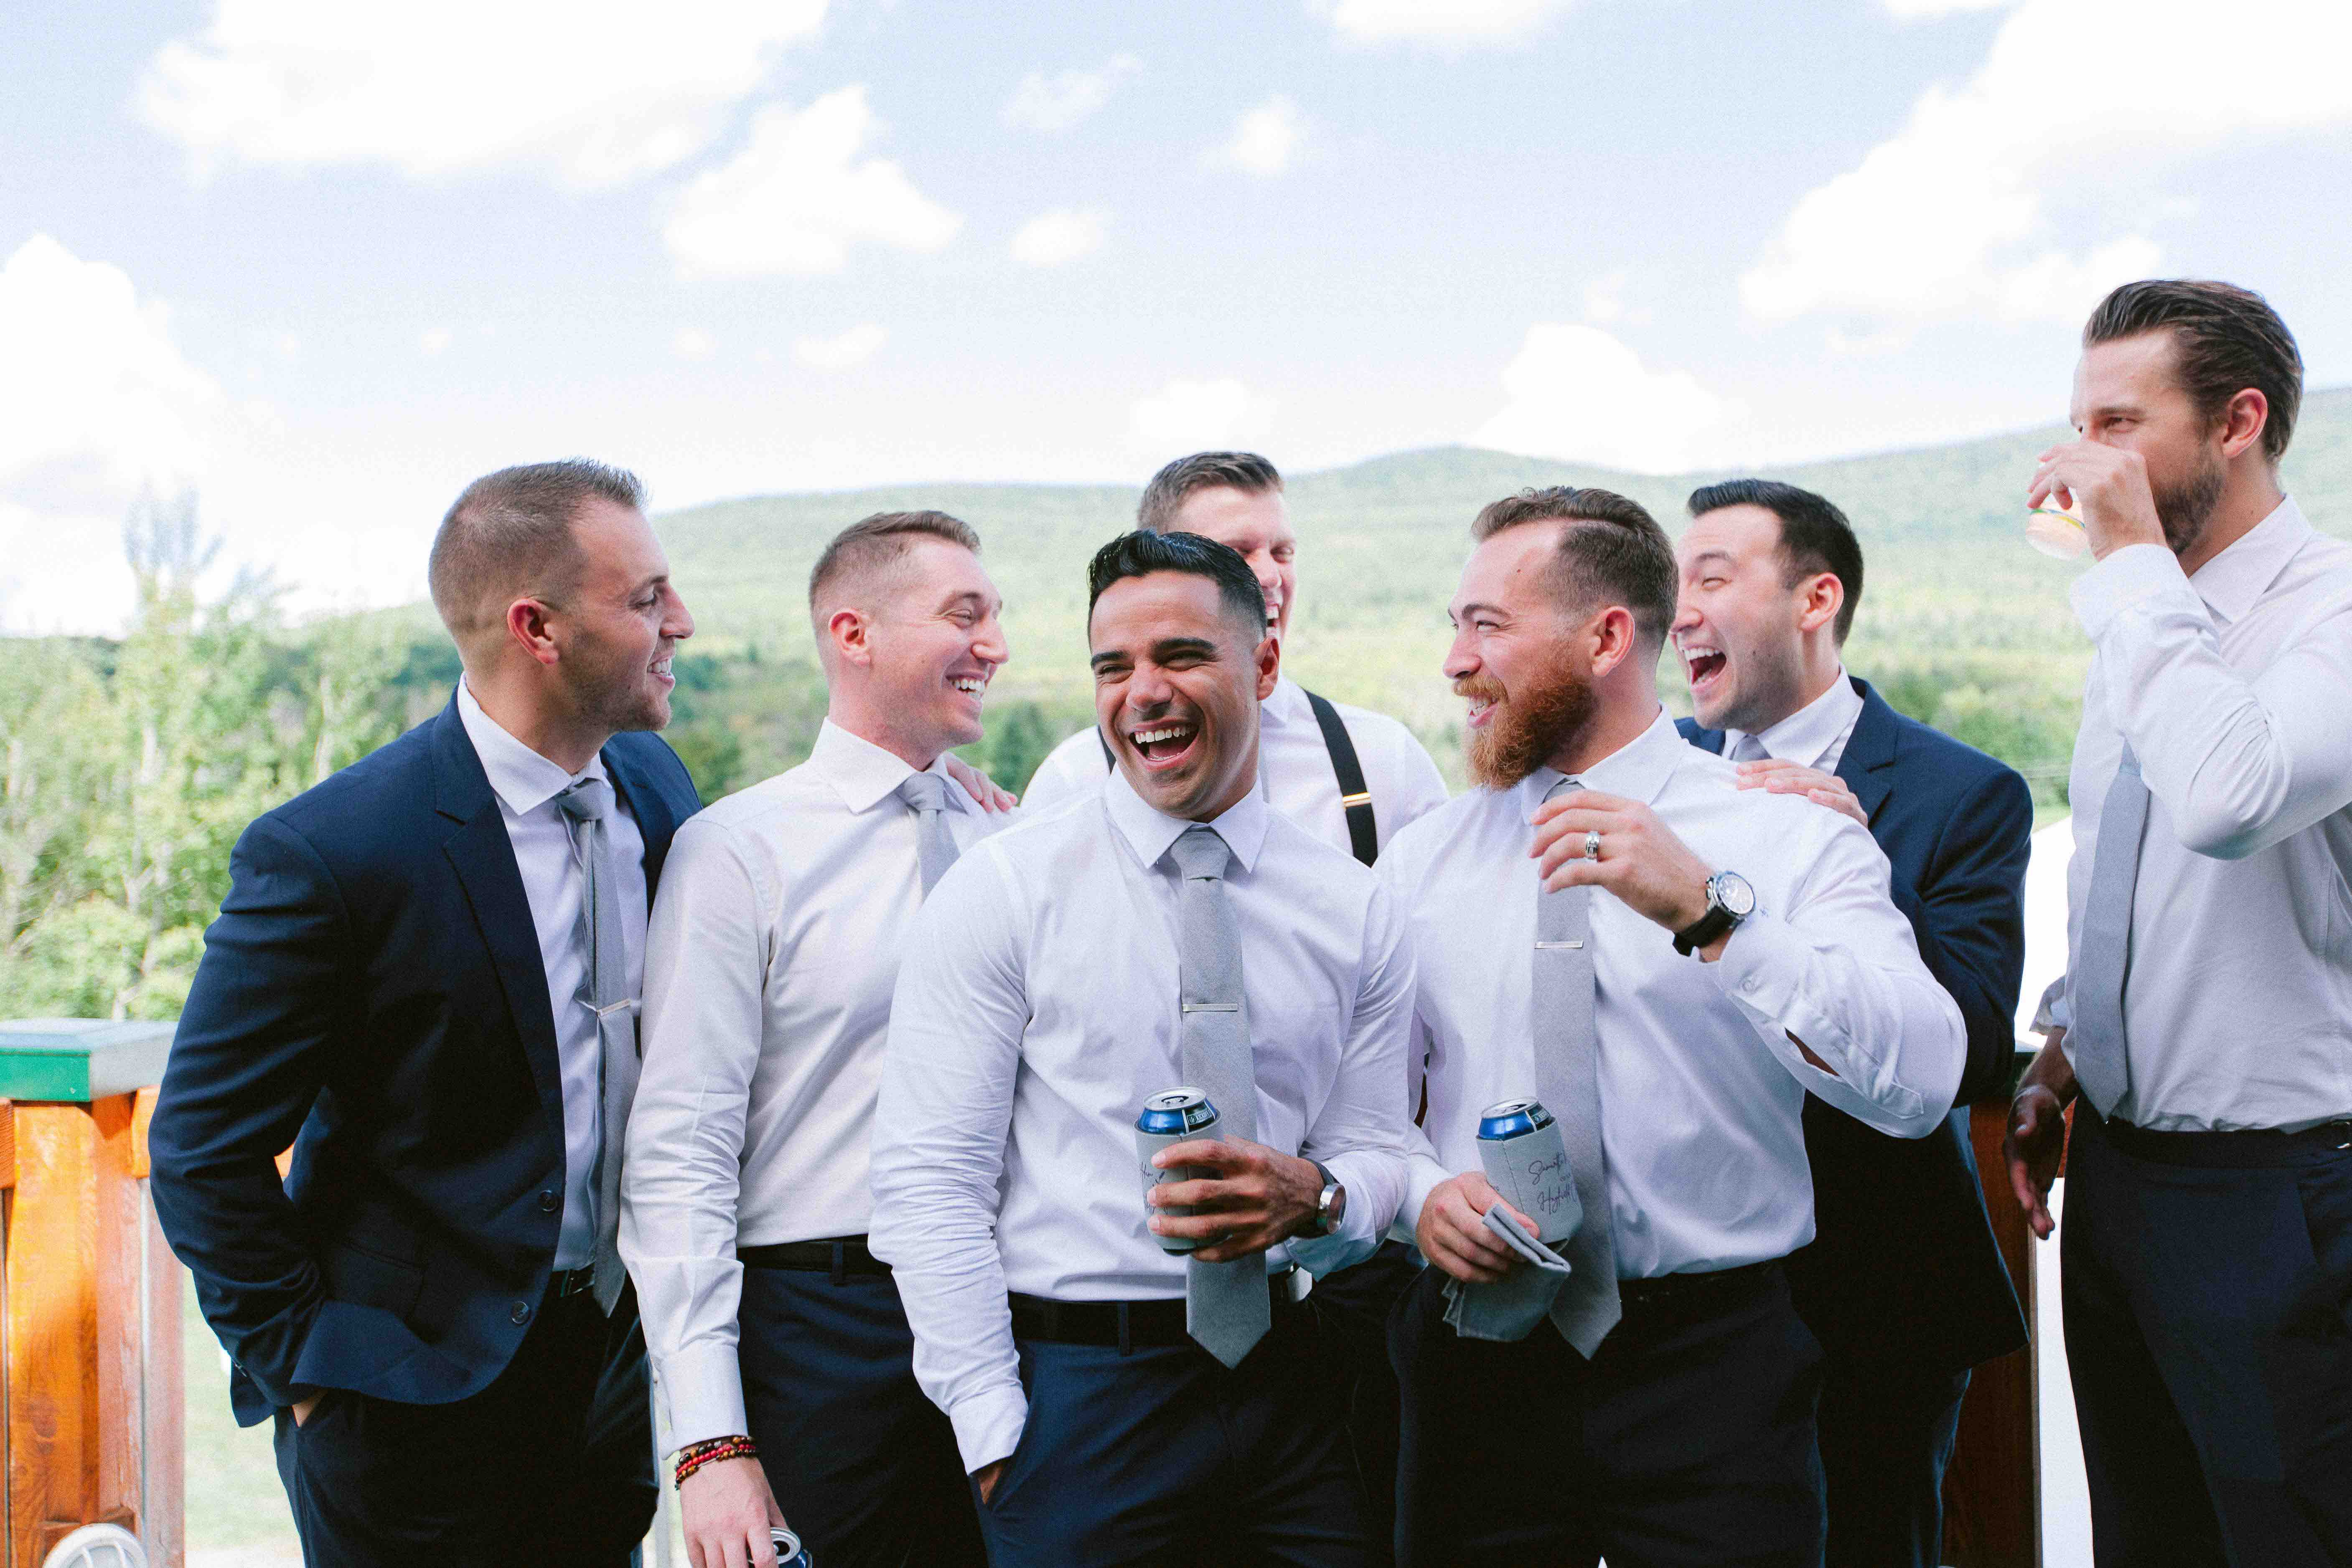 Hayfield-Catskills-Wedding-Best-Photographer-4